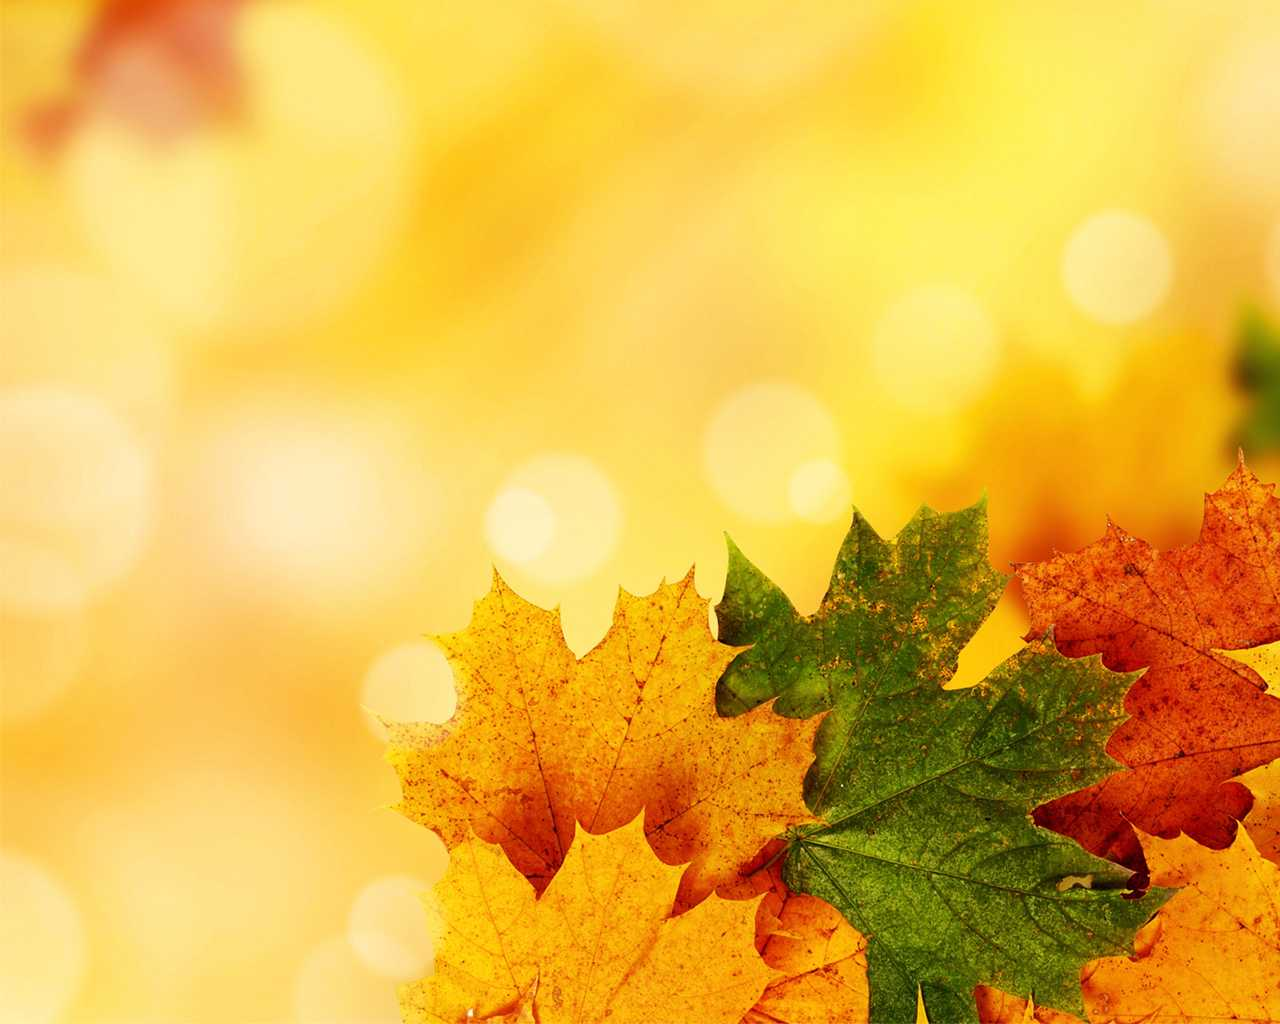 Yellow Autumn Background For Powerpoint - Nature Ppt Templates Throughout Free Fall Powerpoint Templates